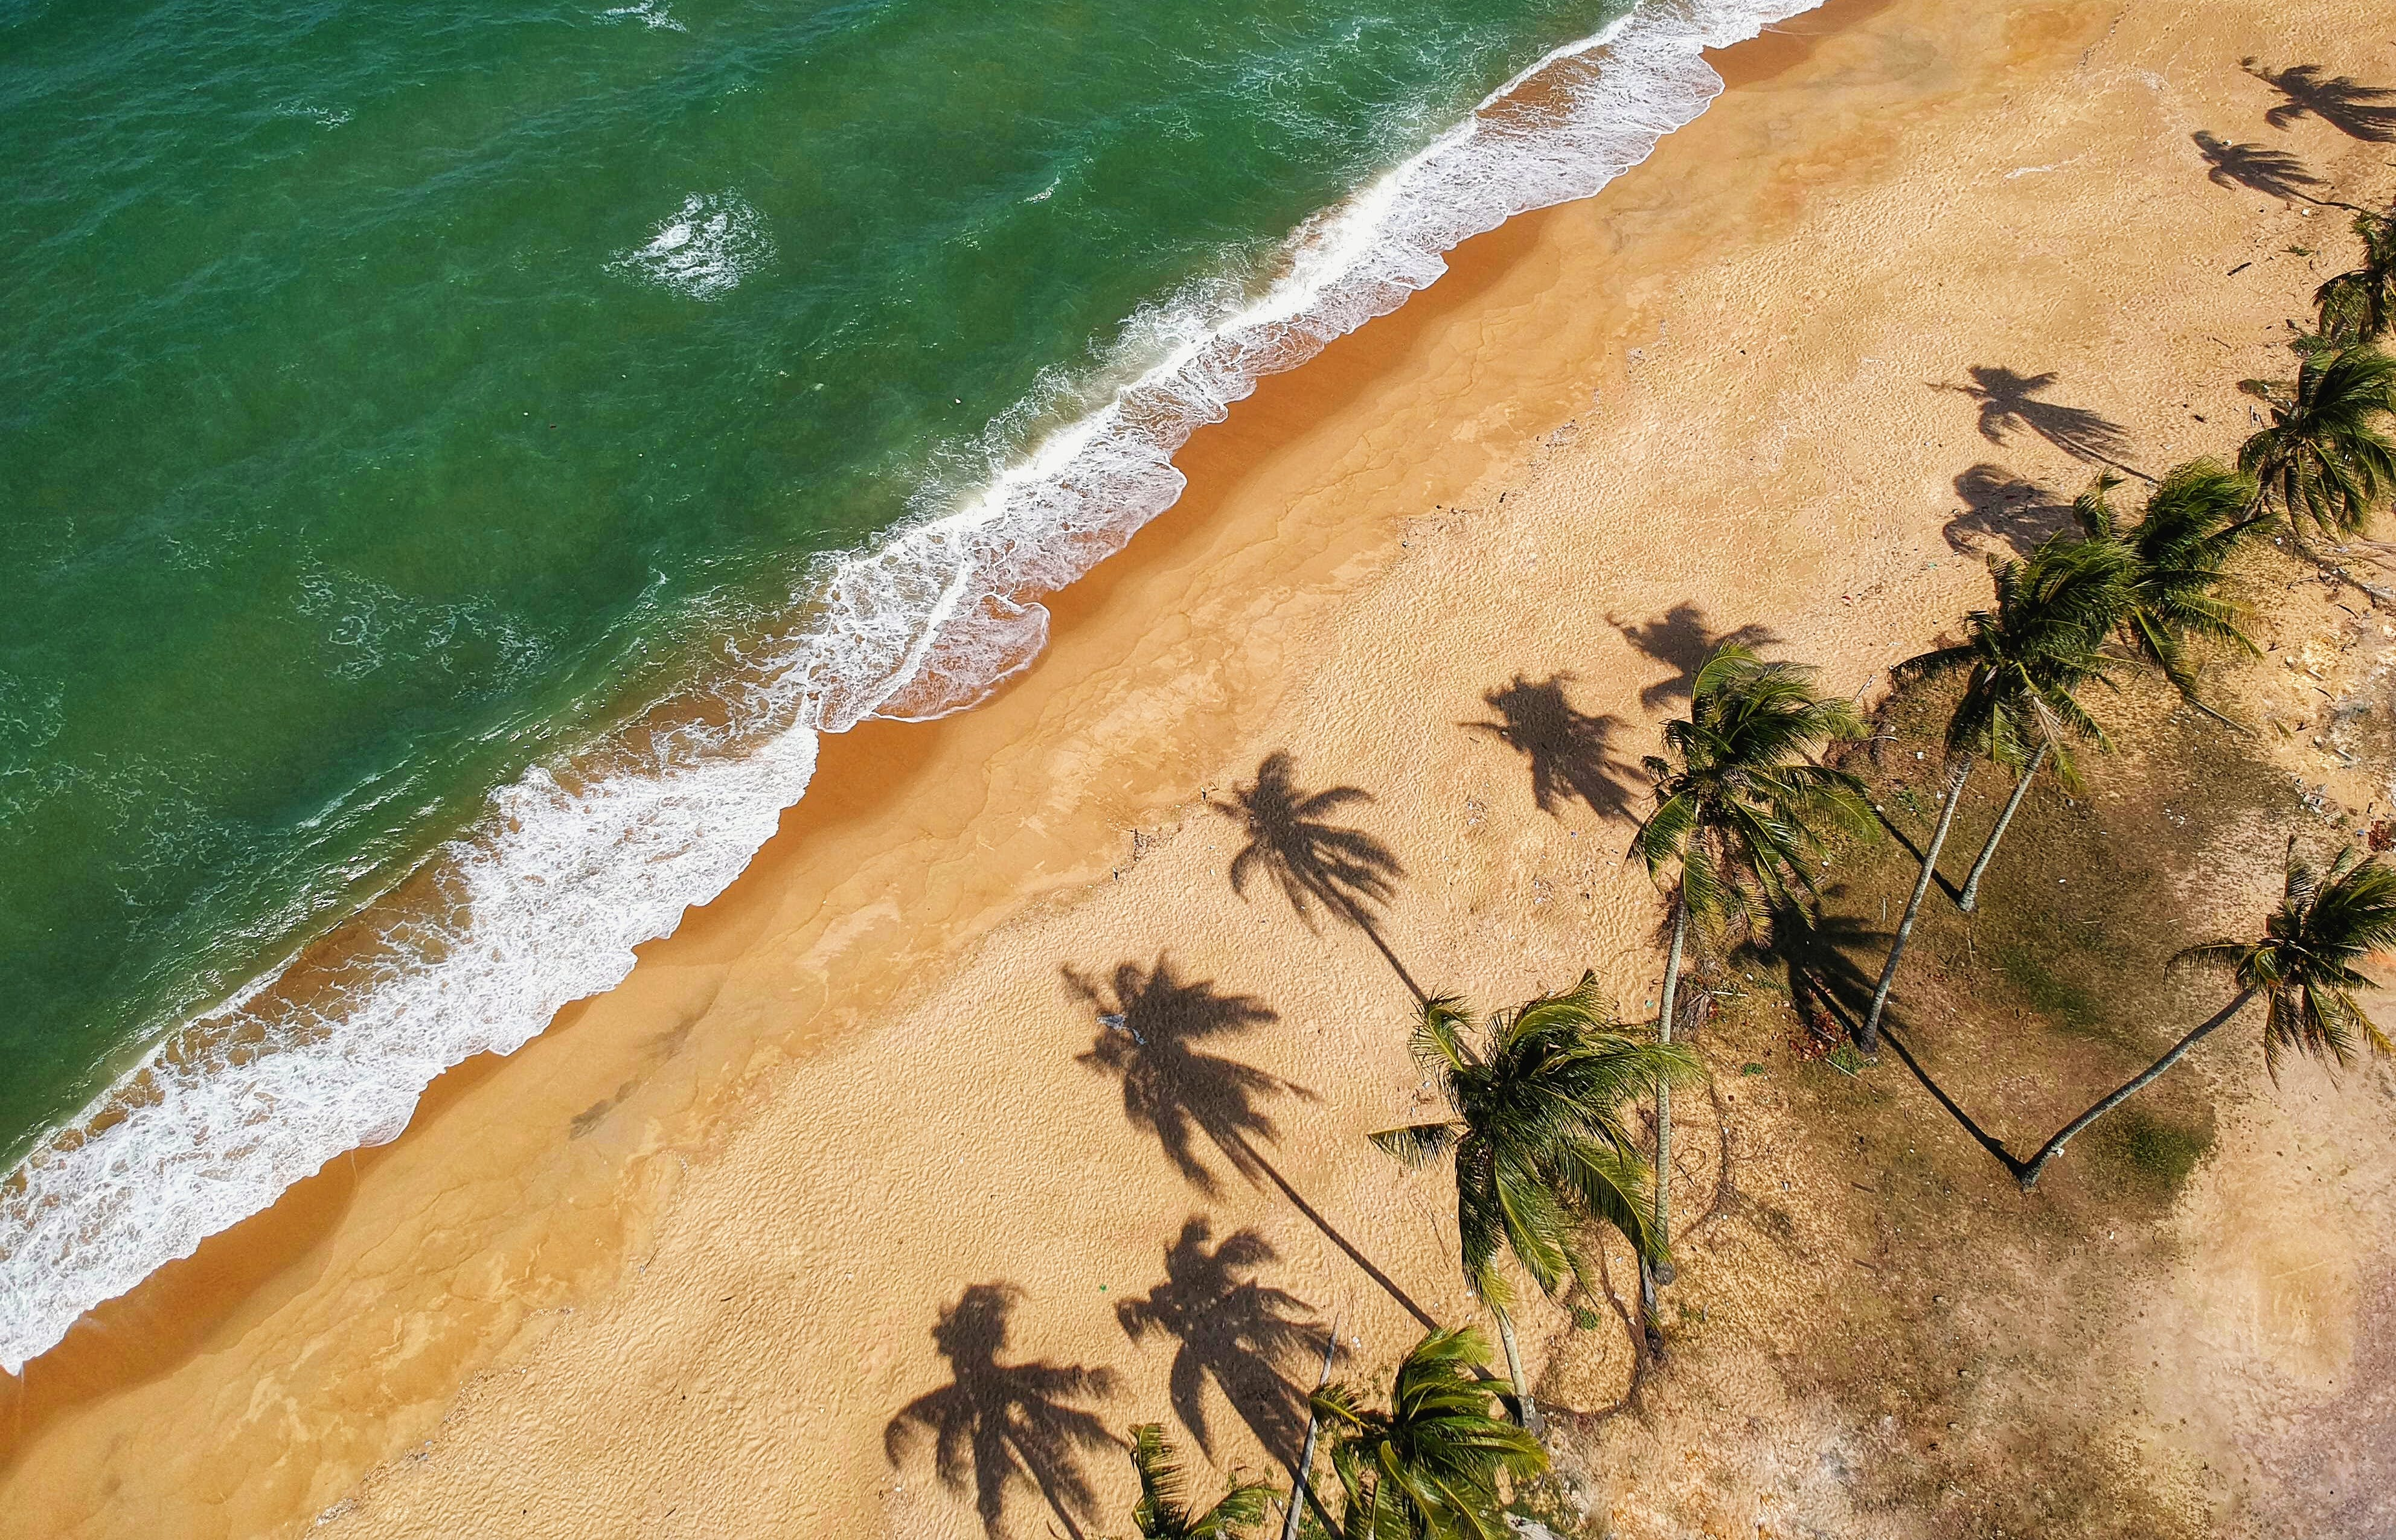 Aerial Photo of Beige With Coconut Trees